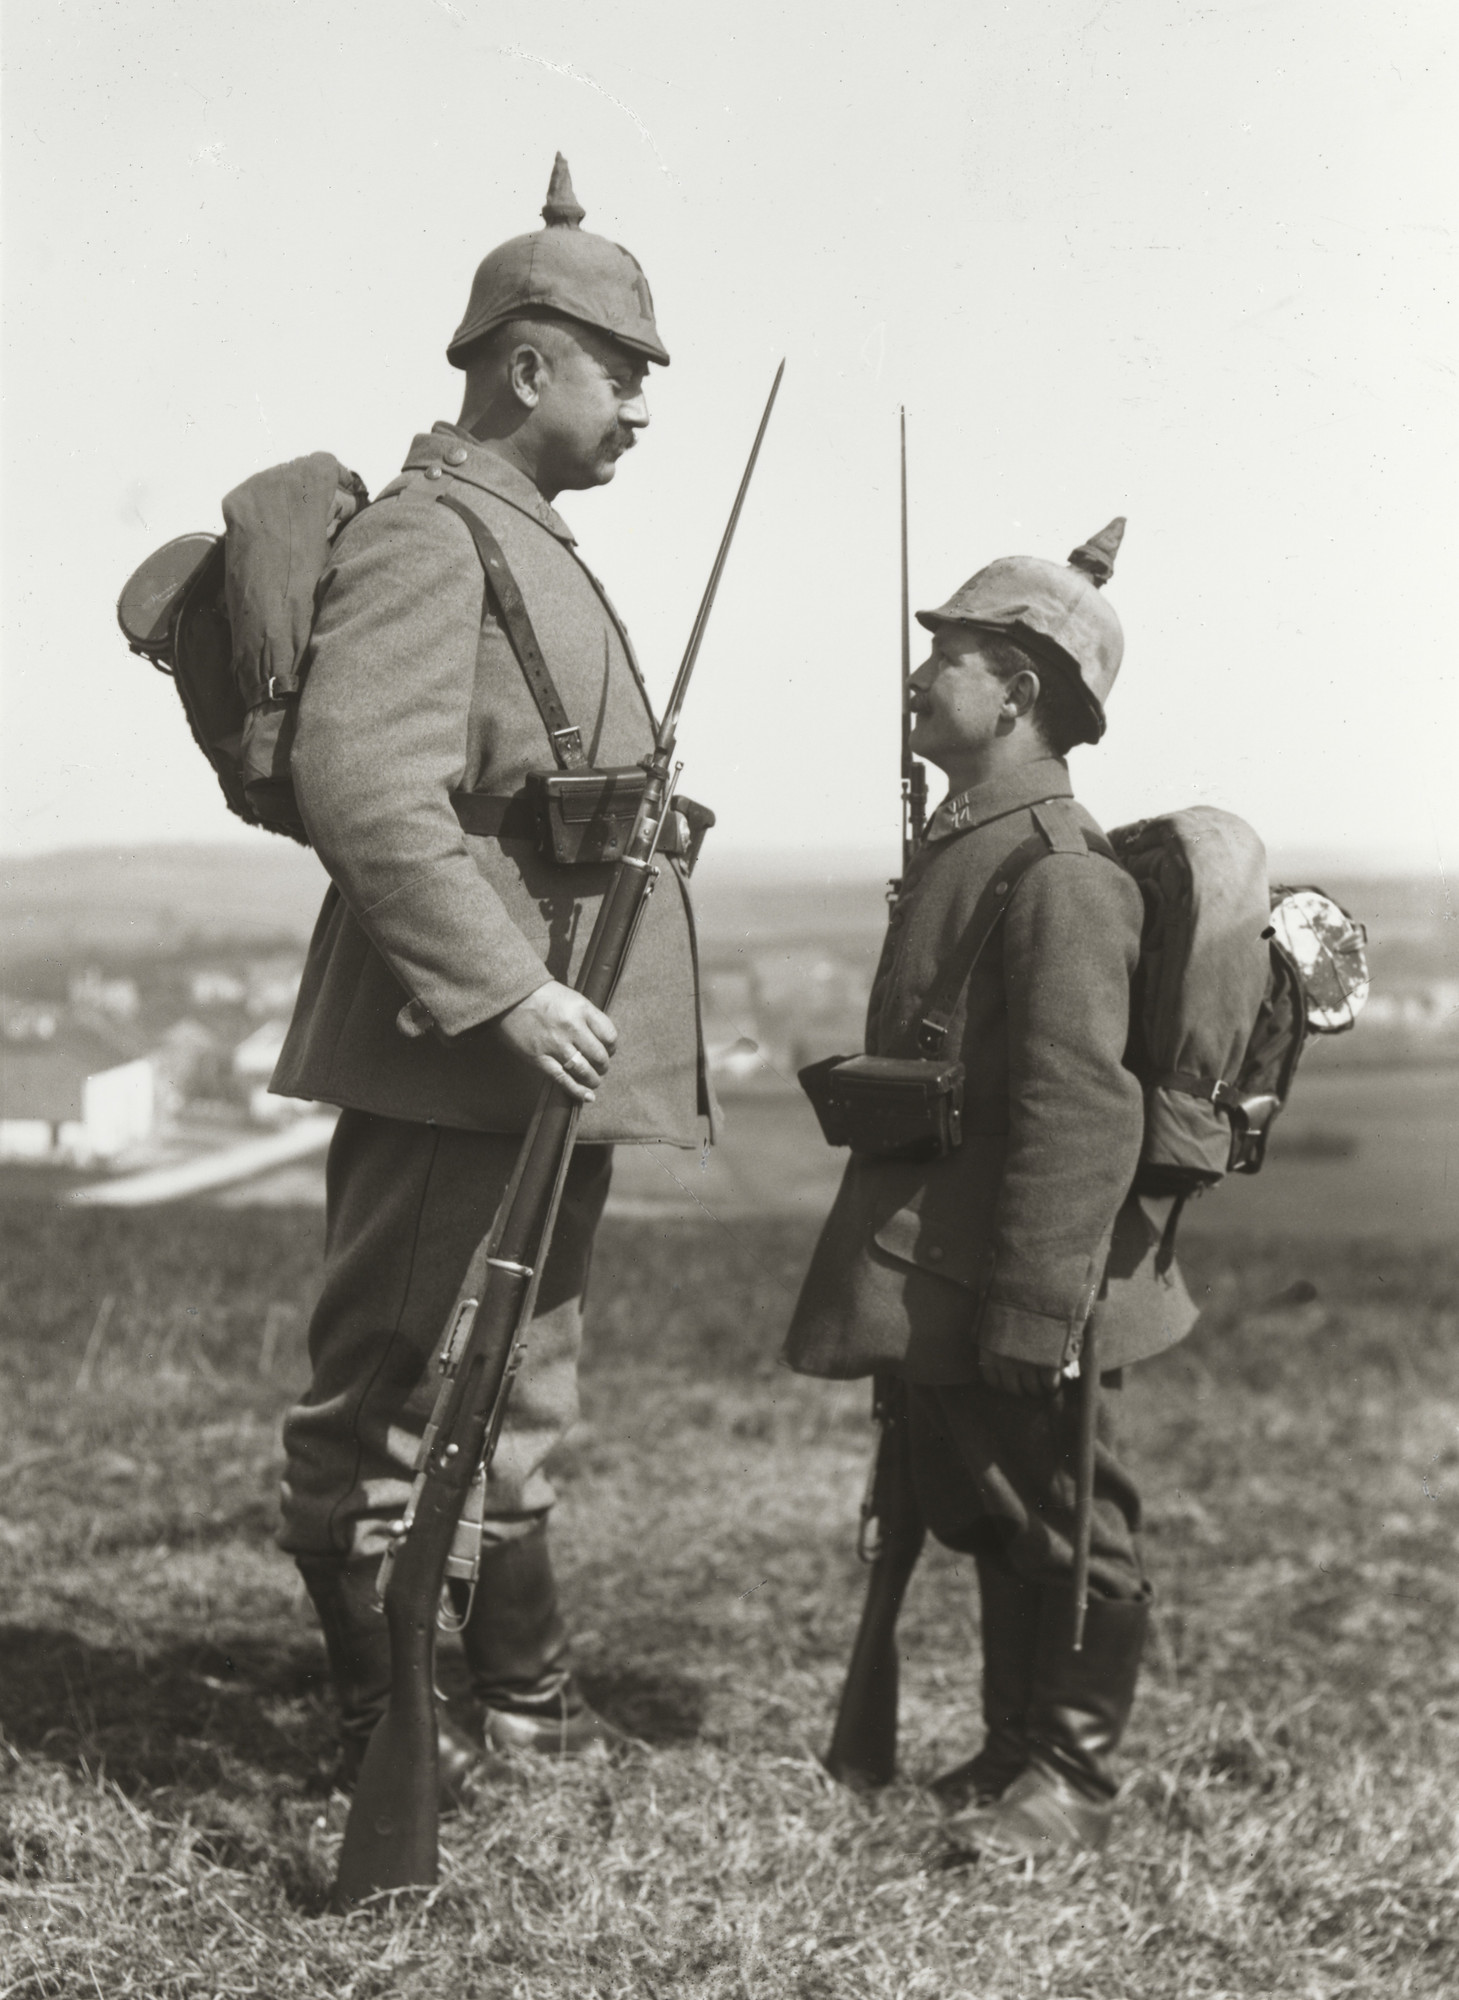 August Sander. Military Height Differences. 1915